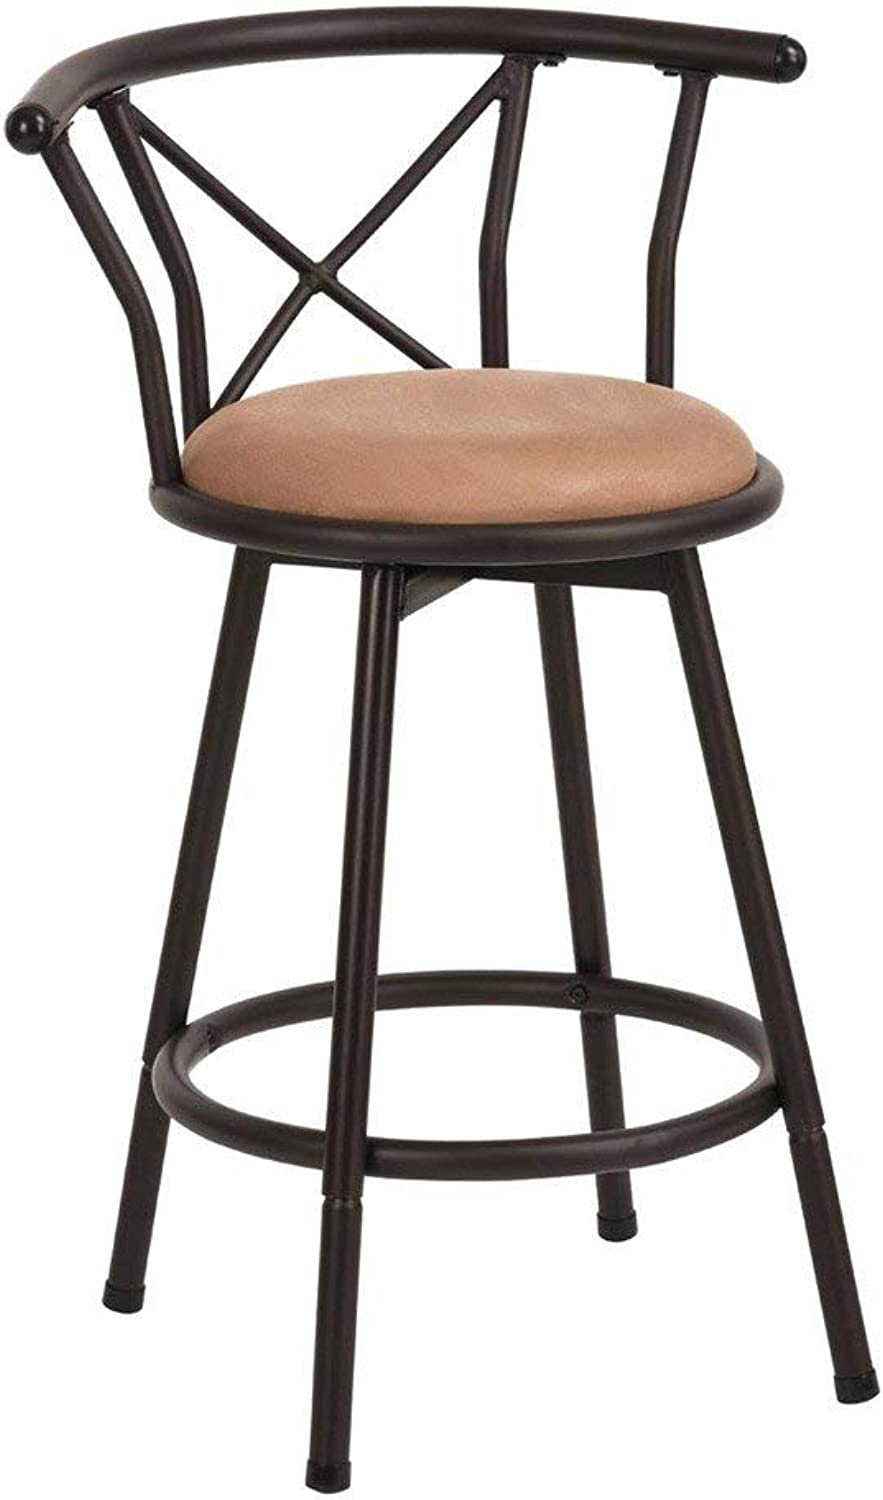 LLYU Vintage Style Industrial bar Counter Stool high Chair with backrest footrest Cushioned Living Room or Kitchen